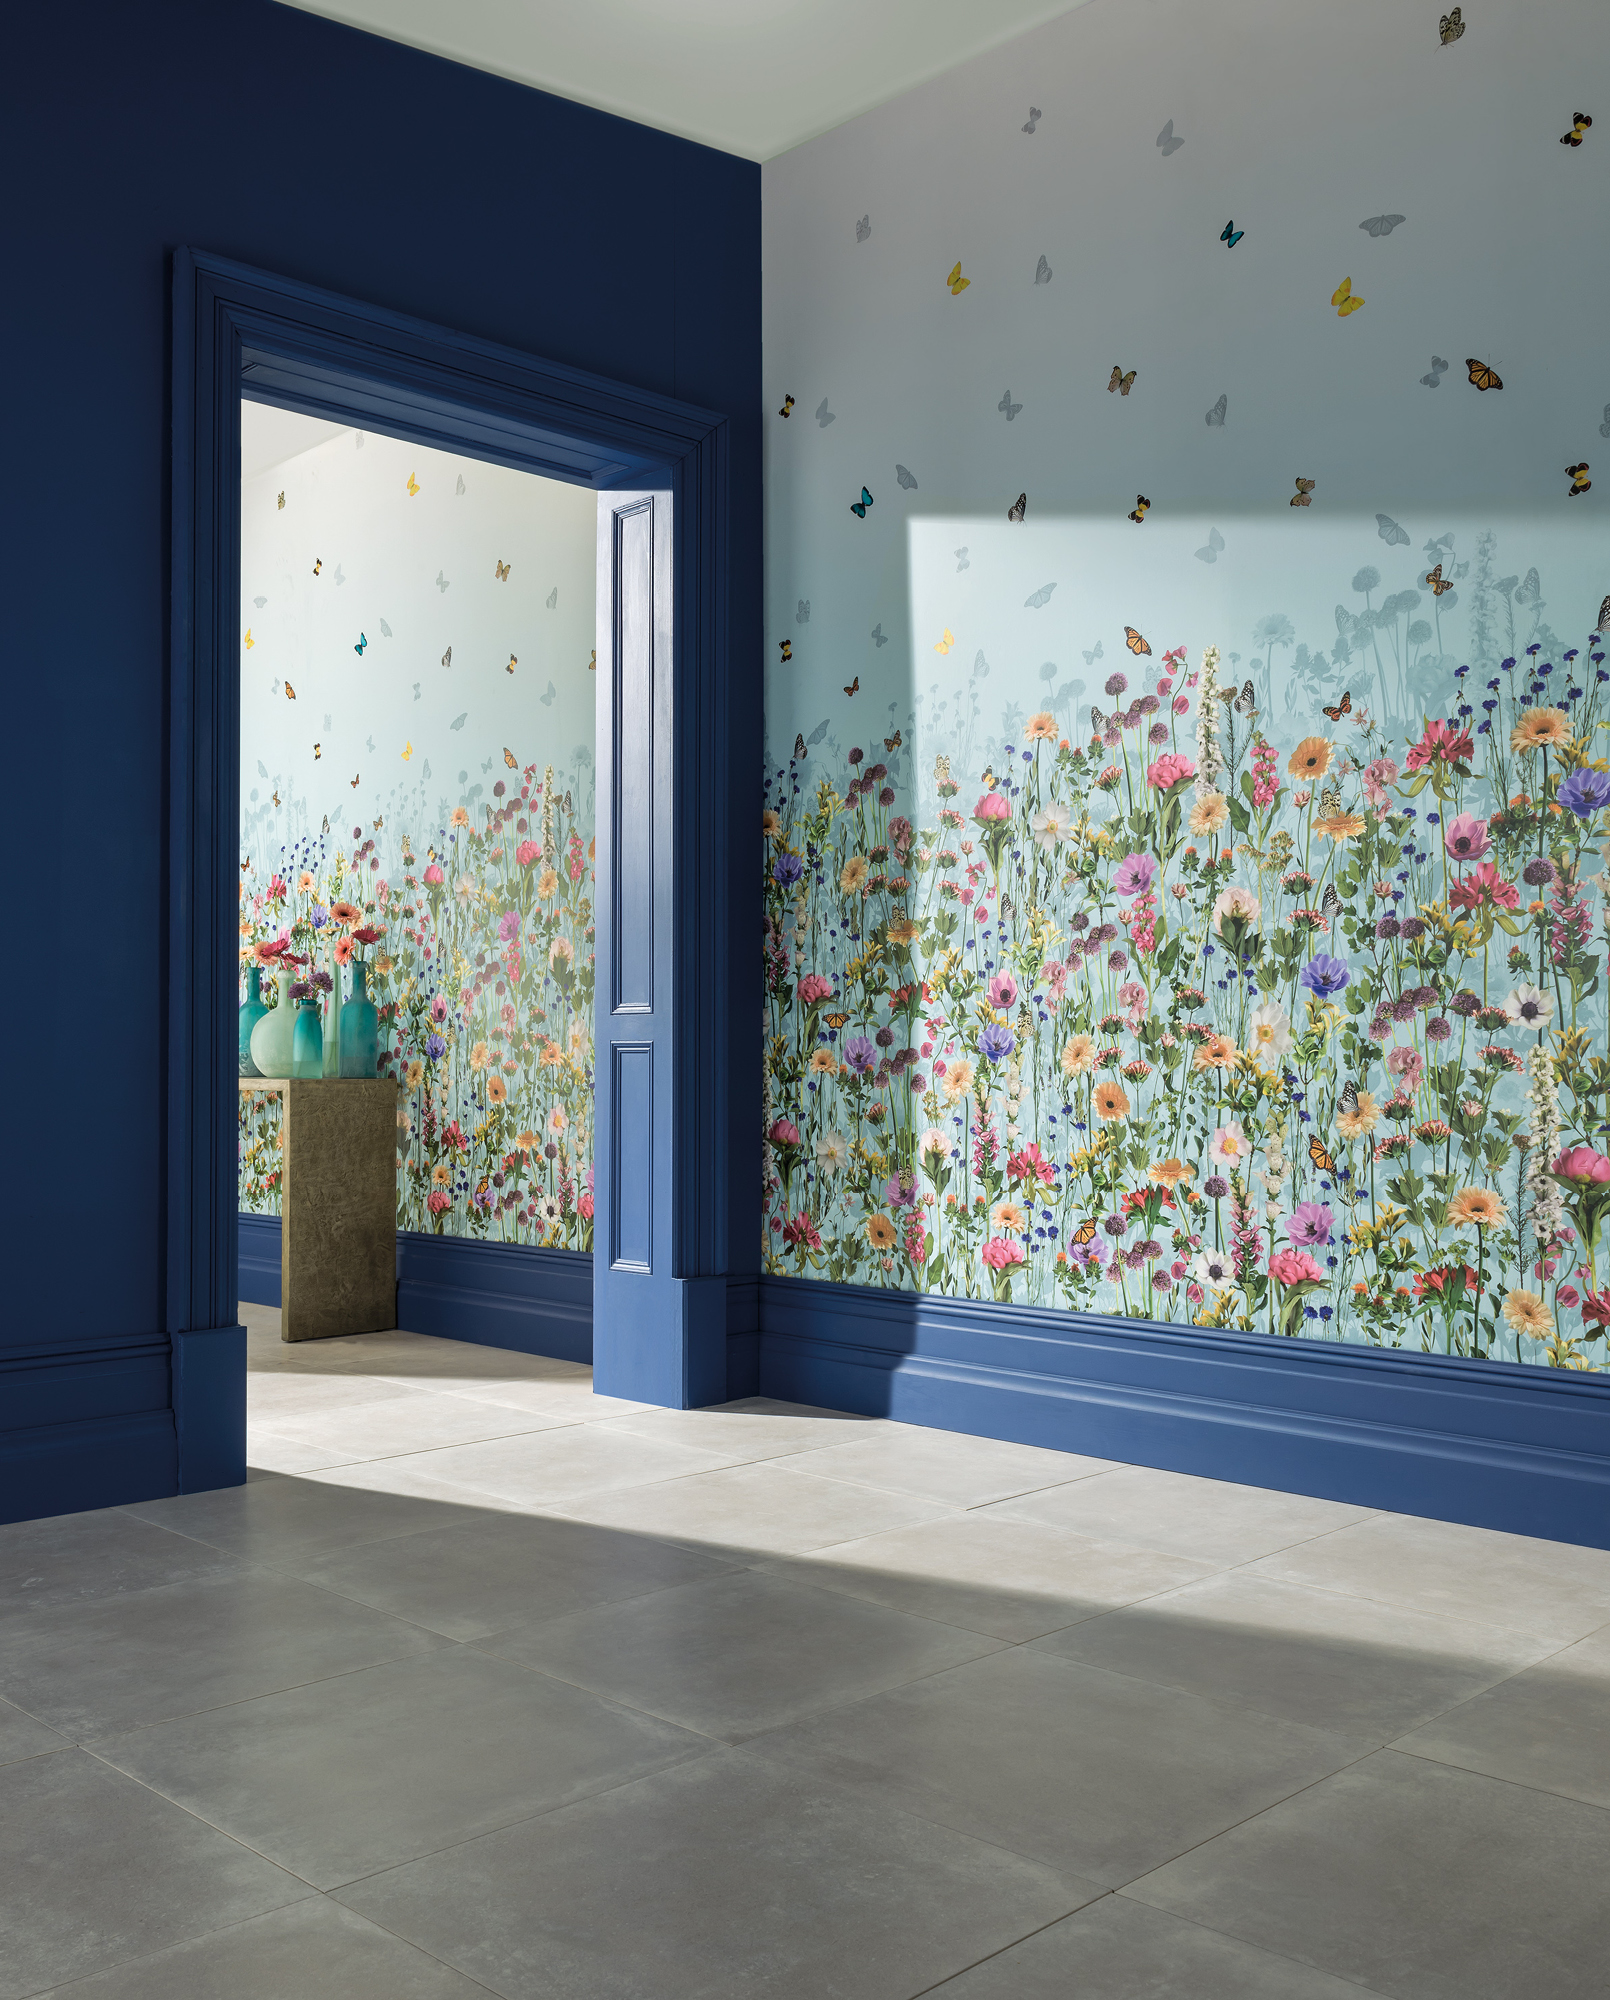 Matthew Williamson has collaborated with Osborne & Little on bold floral and nature-inspired prints in the Belvoir wallpaper collection.